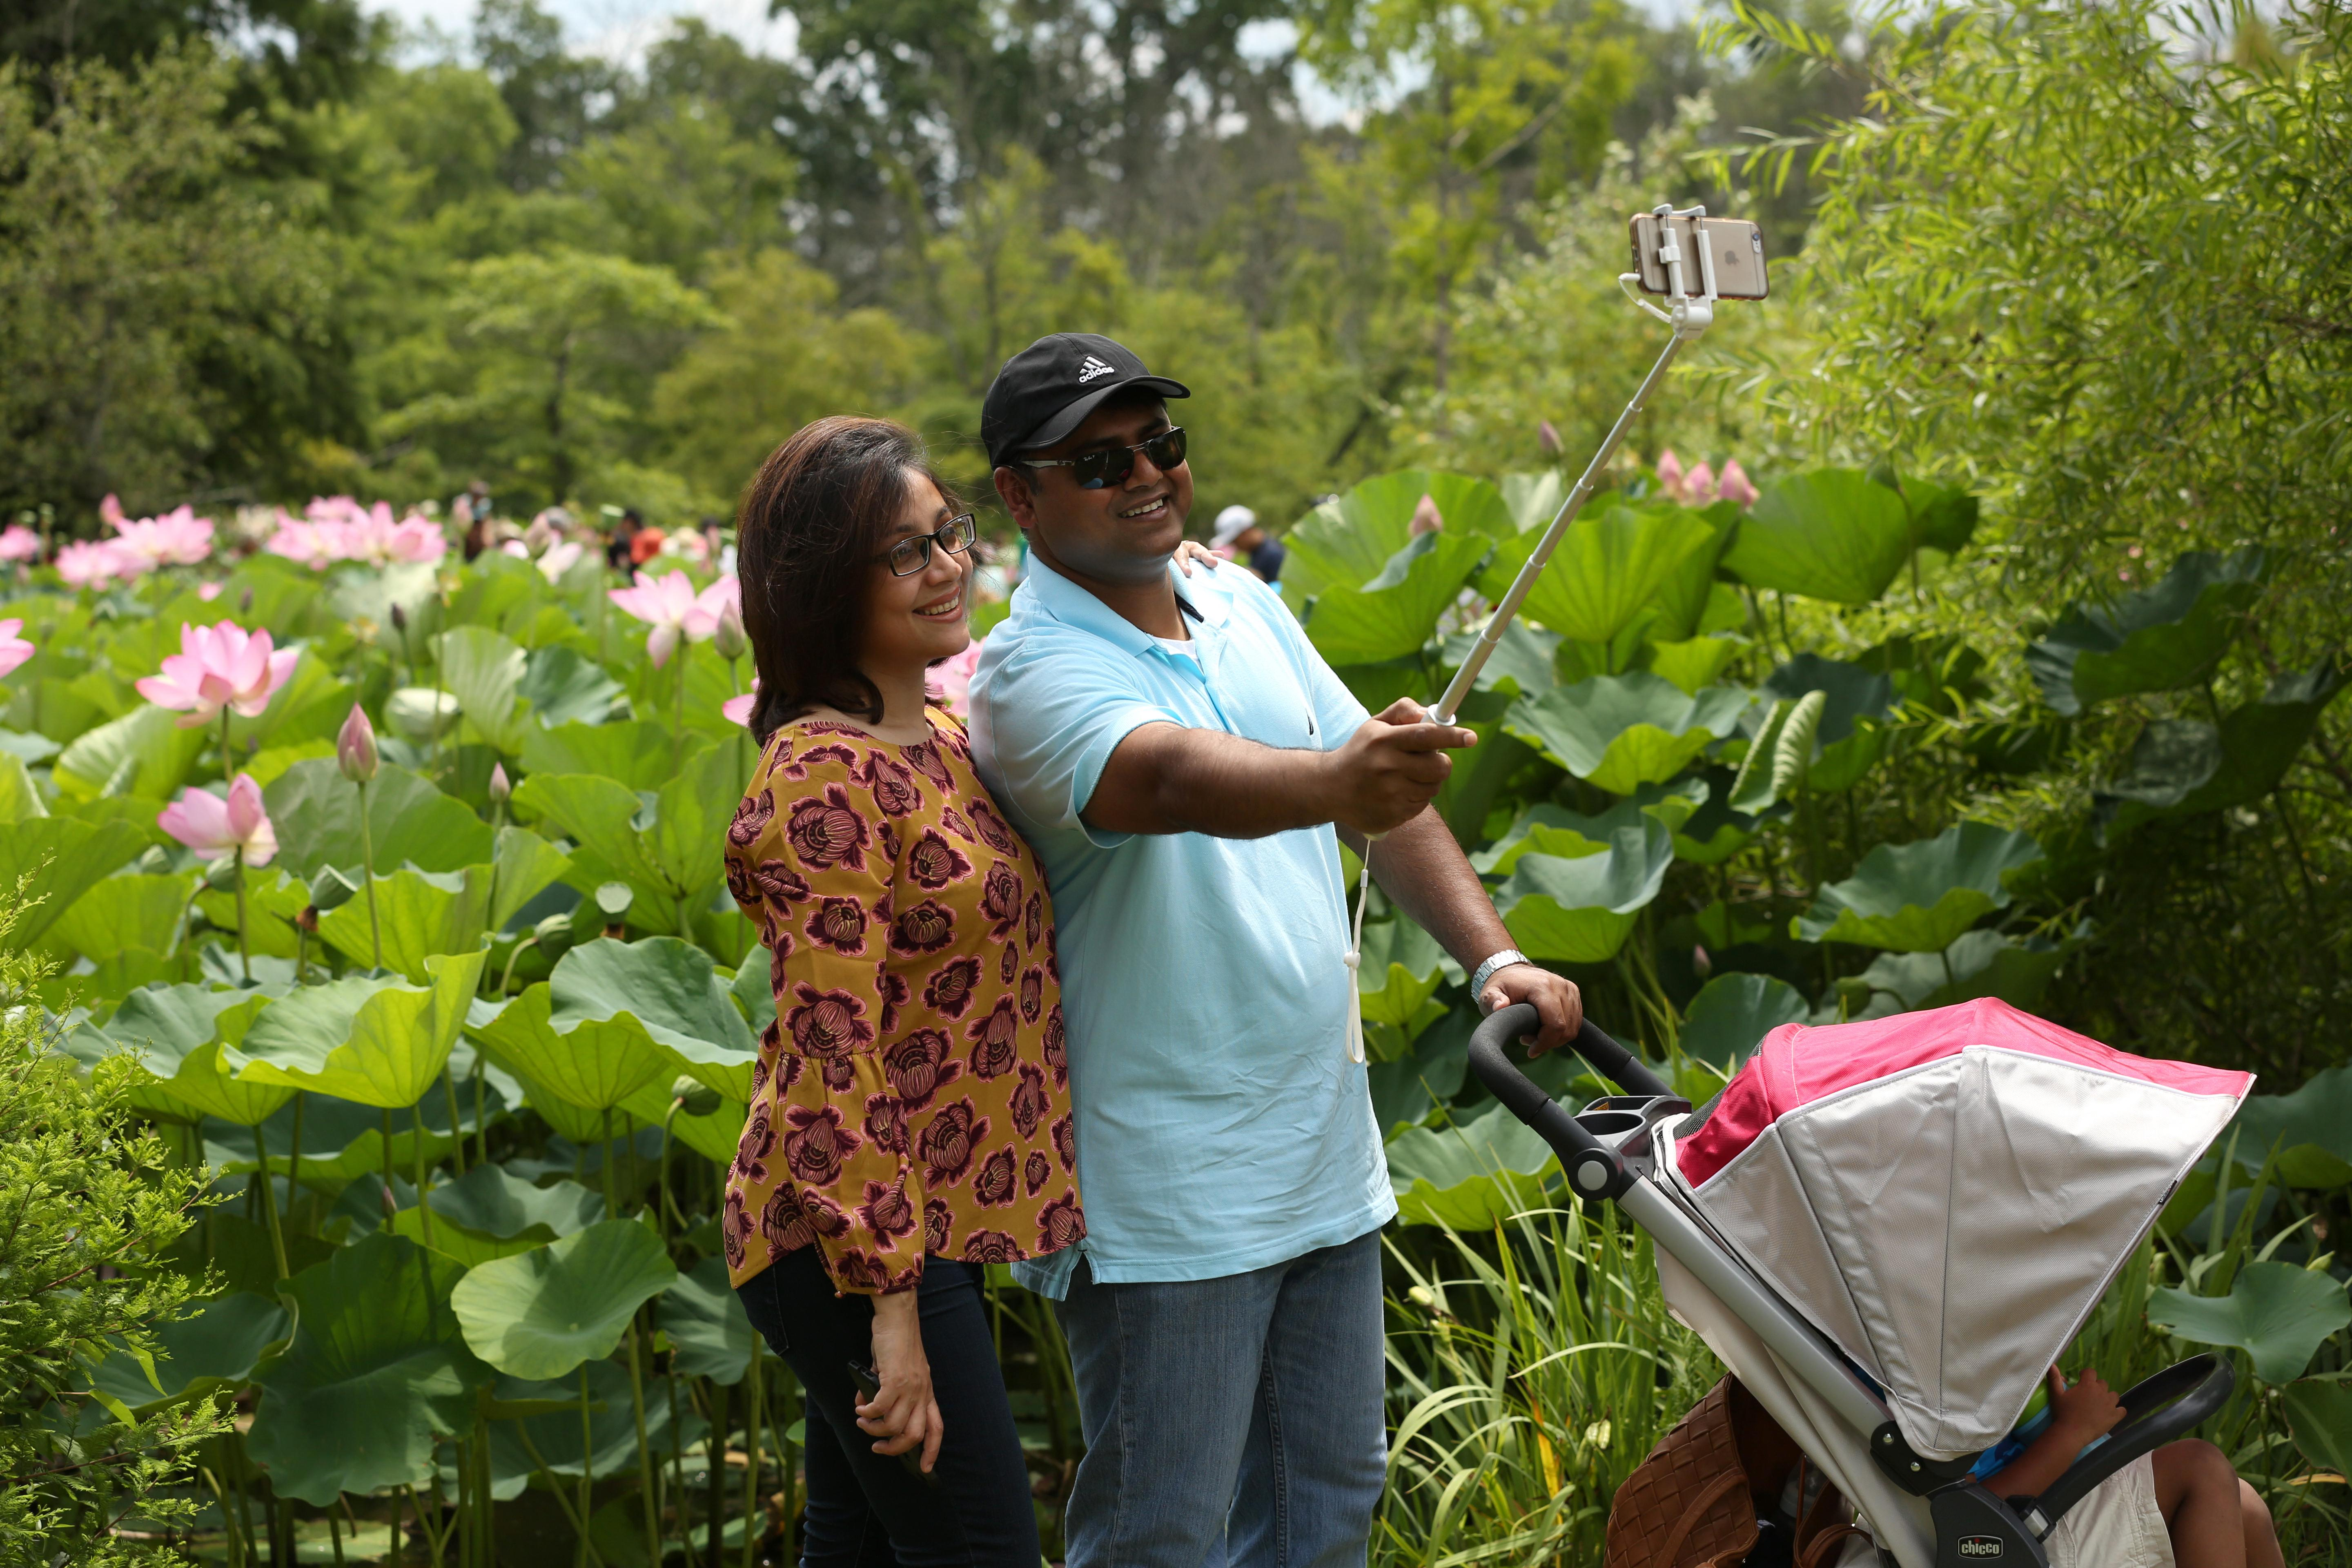 The fun was in full bloom at the Lotus and Water Lily Festival Kenilworth Park and Aquatic Gardens in Anacostia. Visitors were able to check out the stunning flowers while taking in performances from other cultures and snapping selfies. (Amanda Andrade-Rhoades/DC Refined)